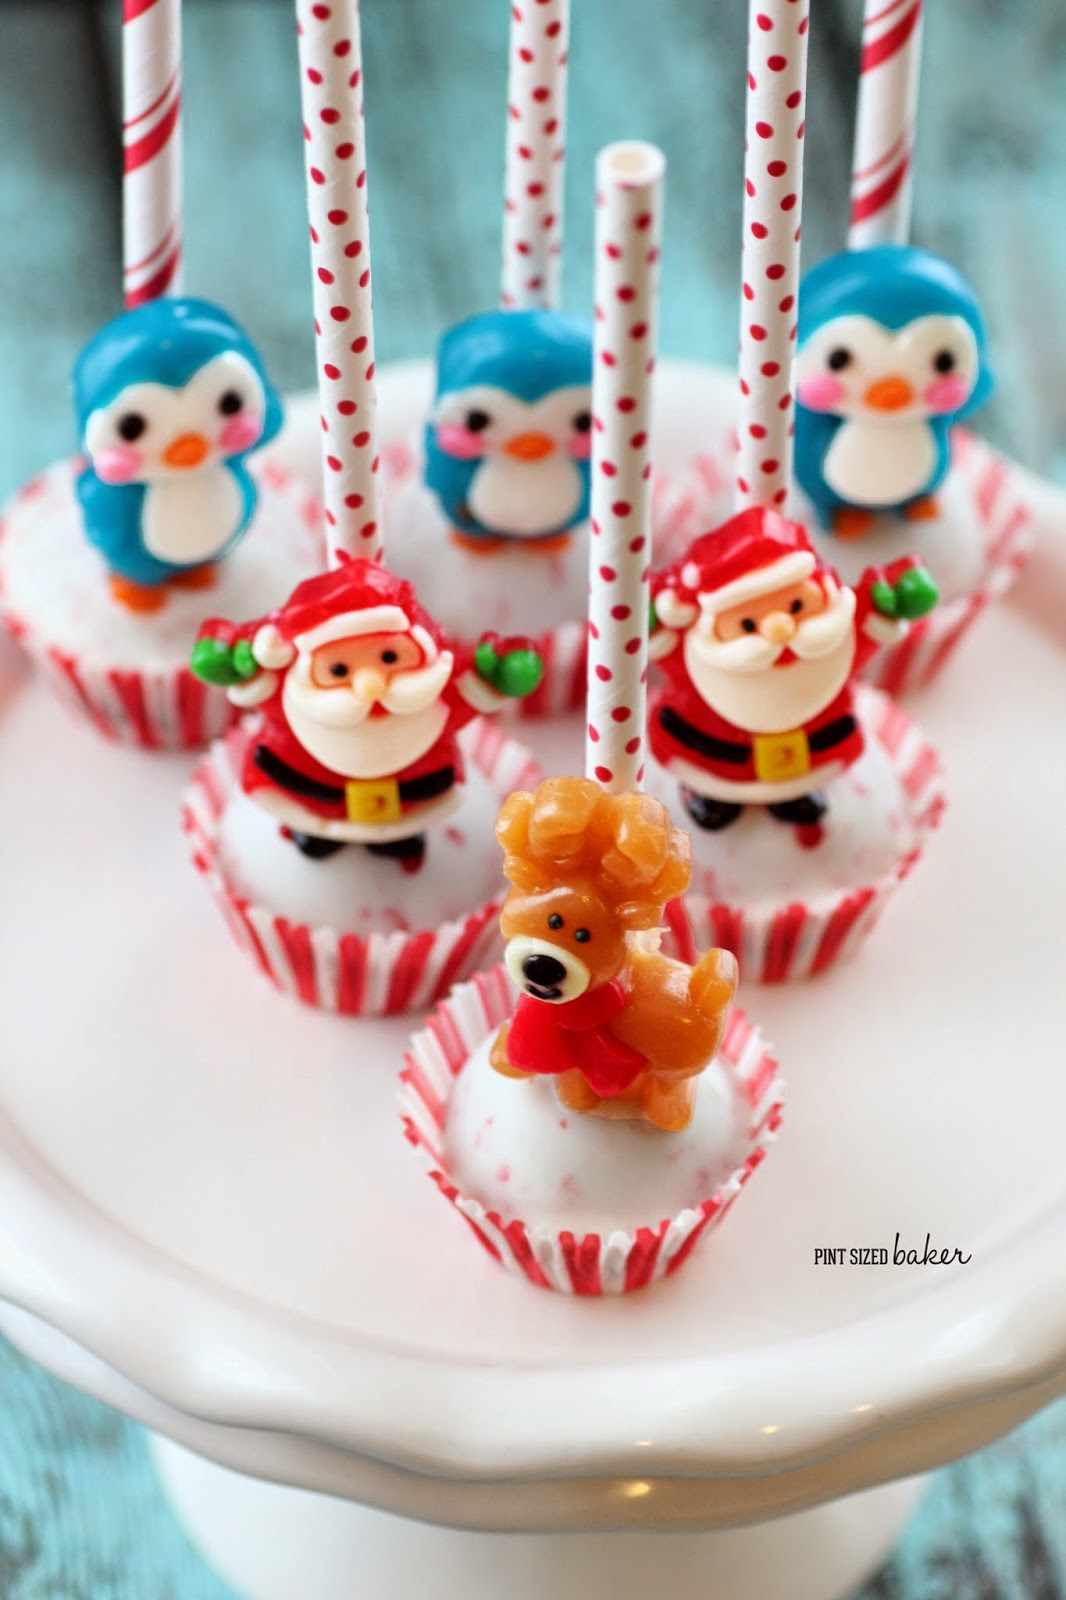 Decorating Cake Pops Easy : Easy Christmas Cake Pops - Pint Sized Baker